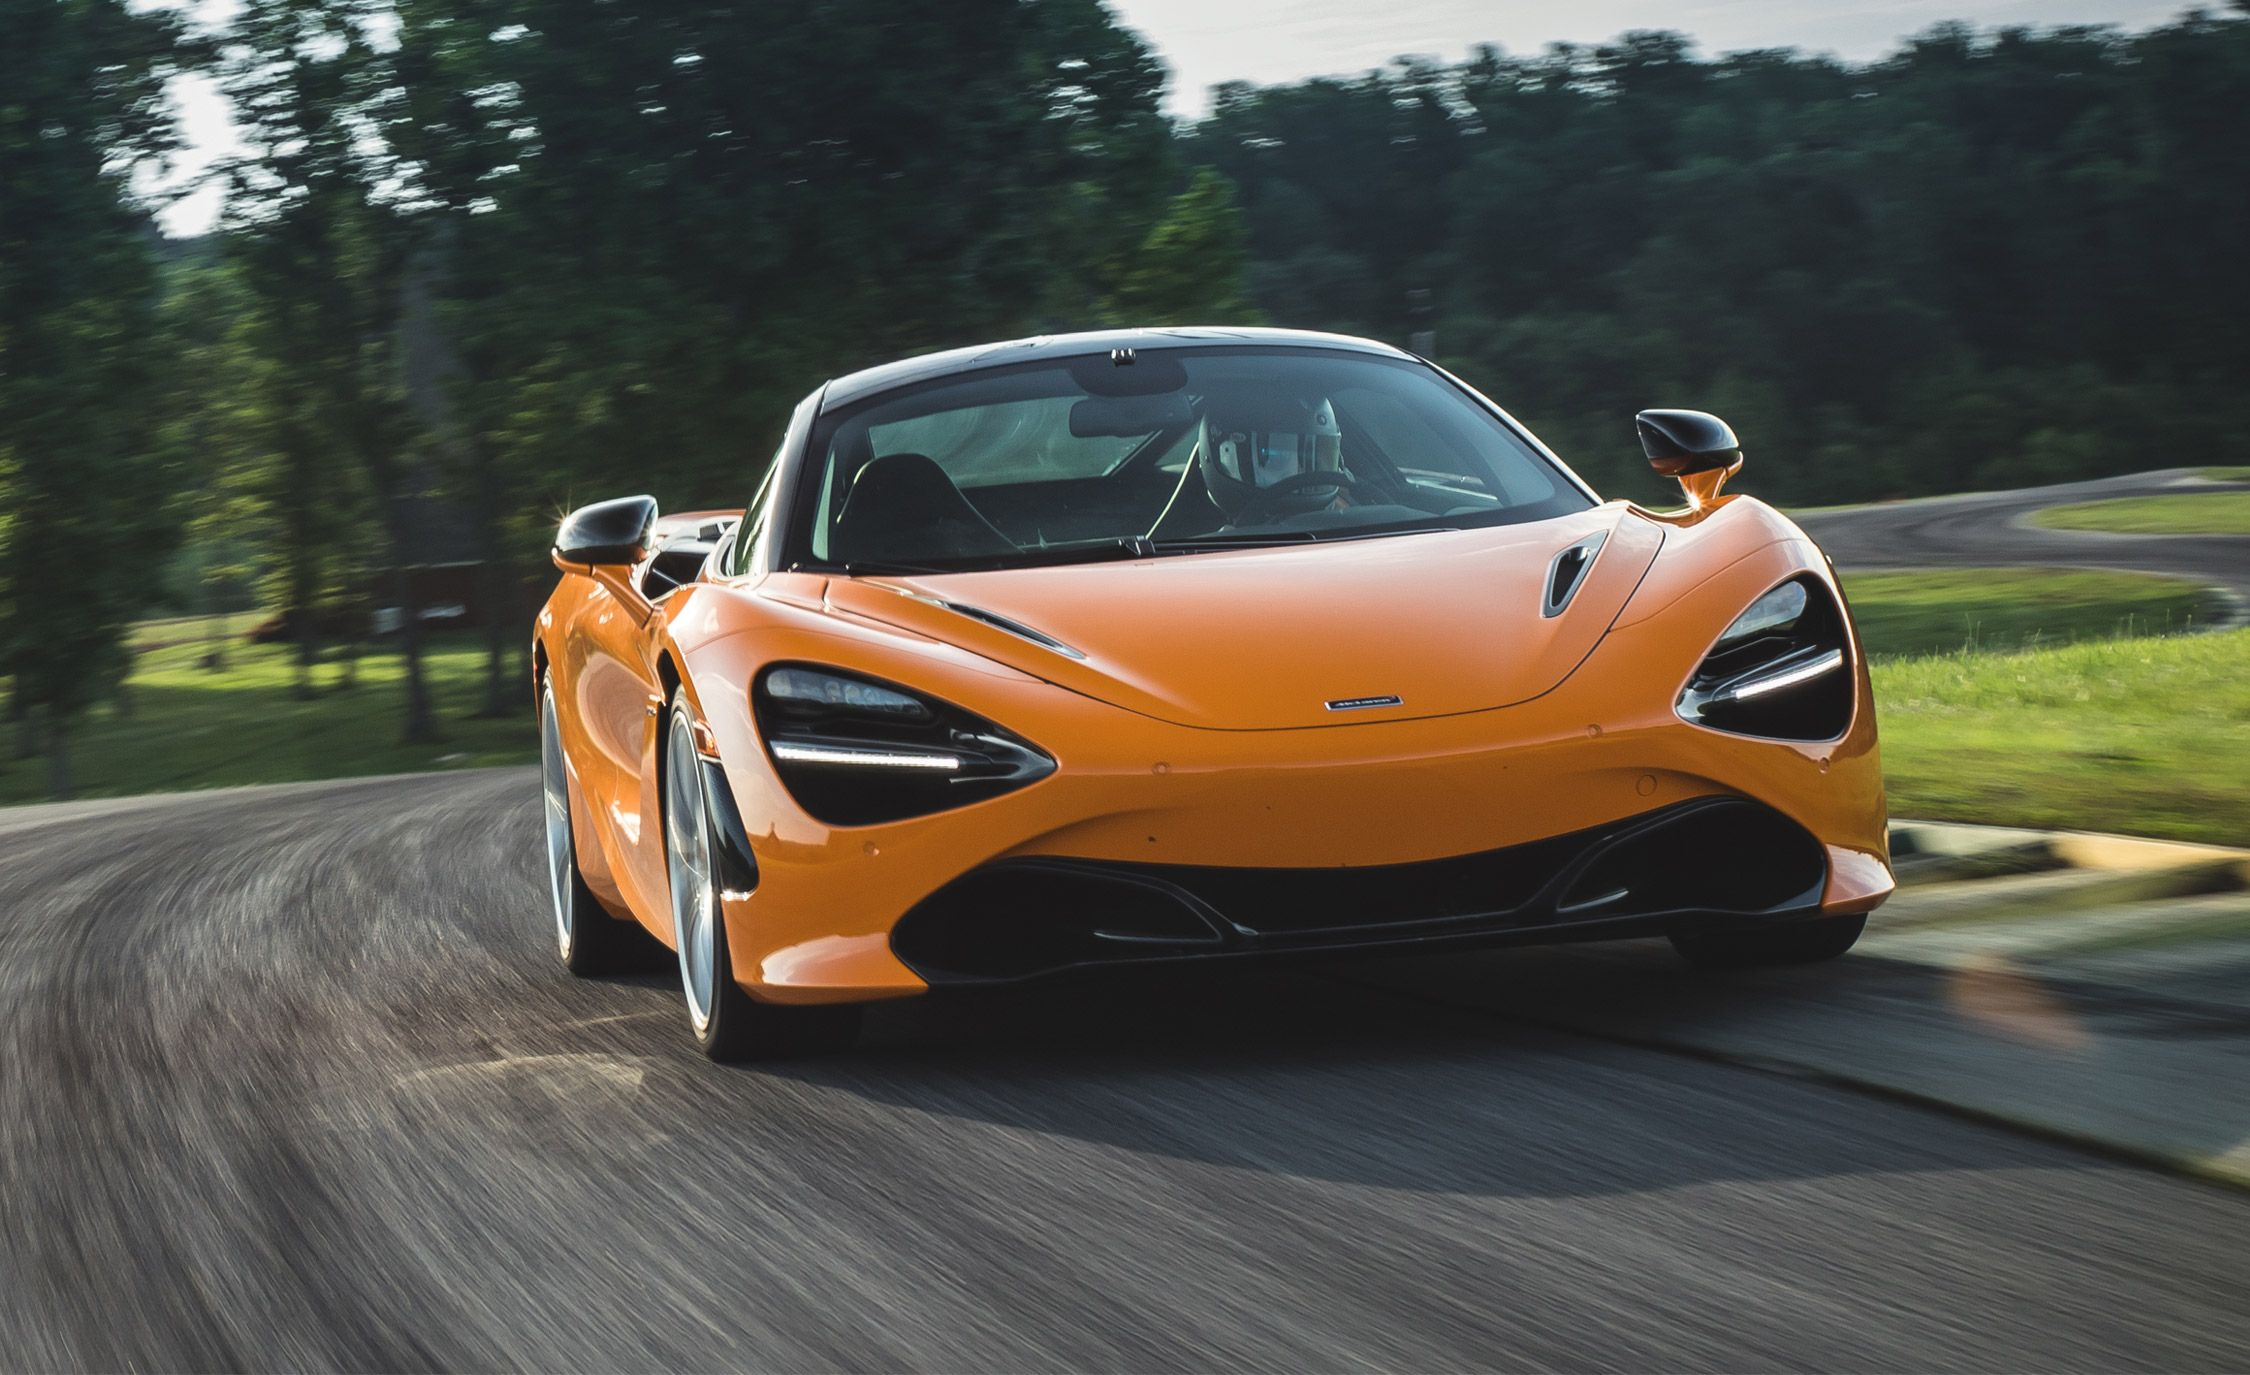 2019 Mclaren 720s Reviews Mclaren 720s Price Photos And Specs